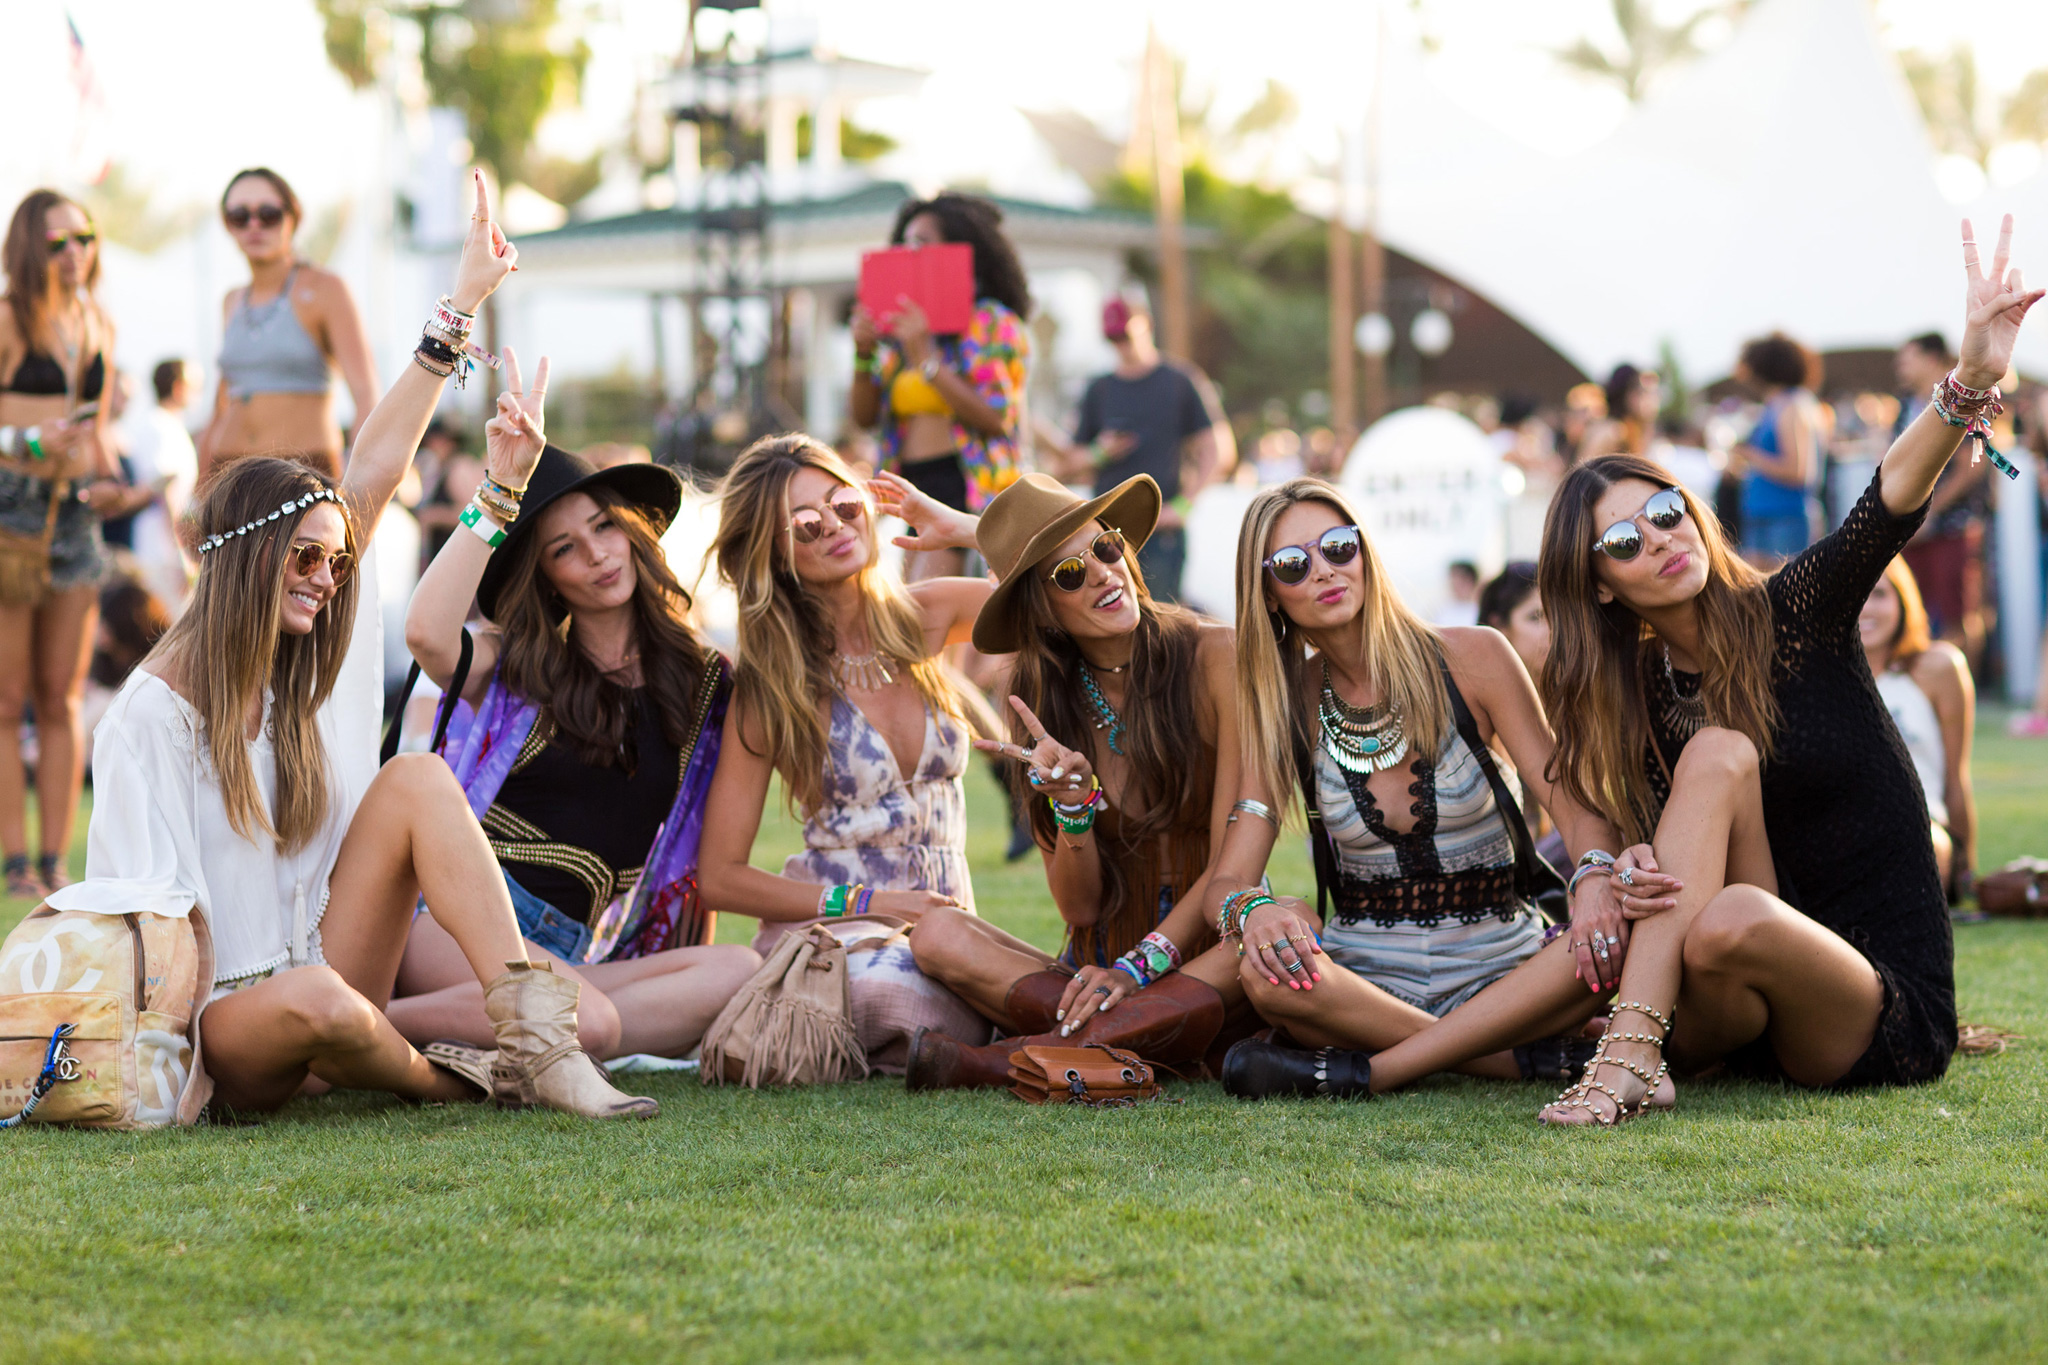 https://bellafruitella.files.wordpress.com/2015/04/coachella_2015-style-fashion-mode-festival-outfit-ootd-hippie-style-street.jpg